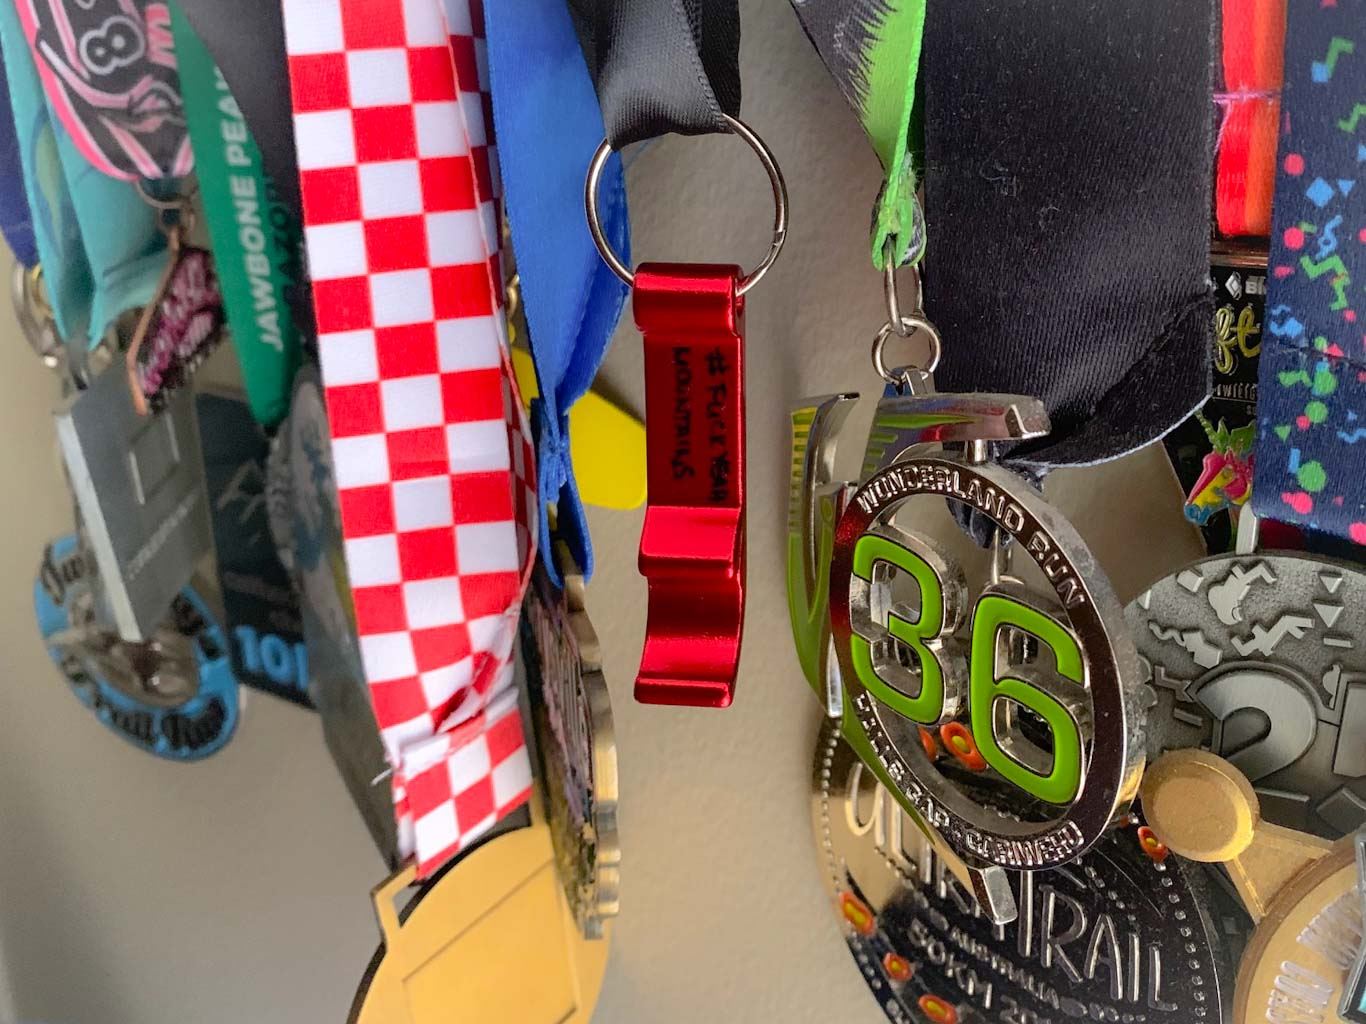 Our bespoke medals